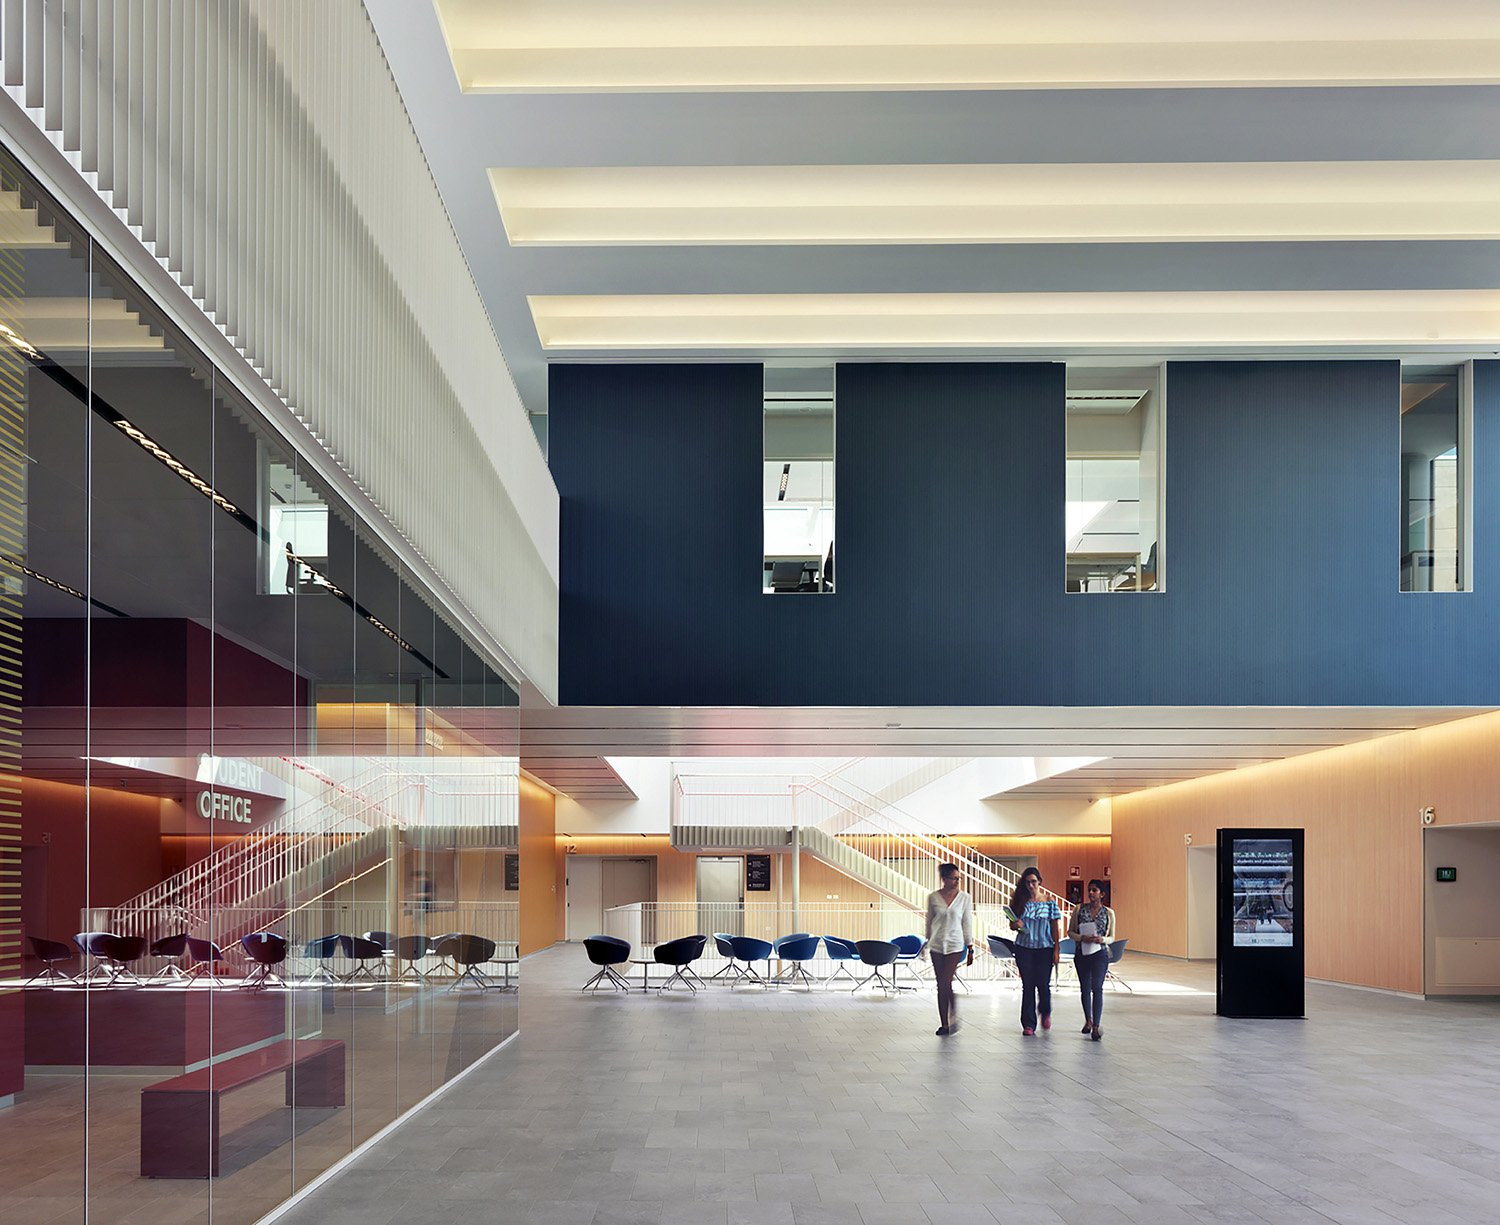 The entrance hall in the Didactic center Andrea Martiradonna